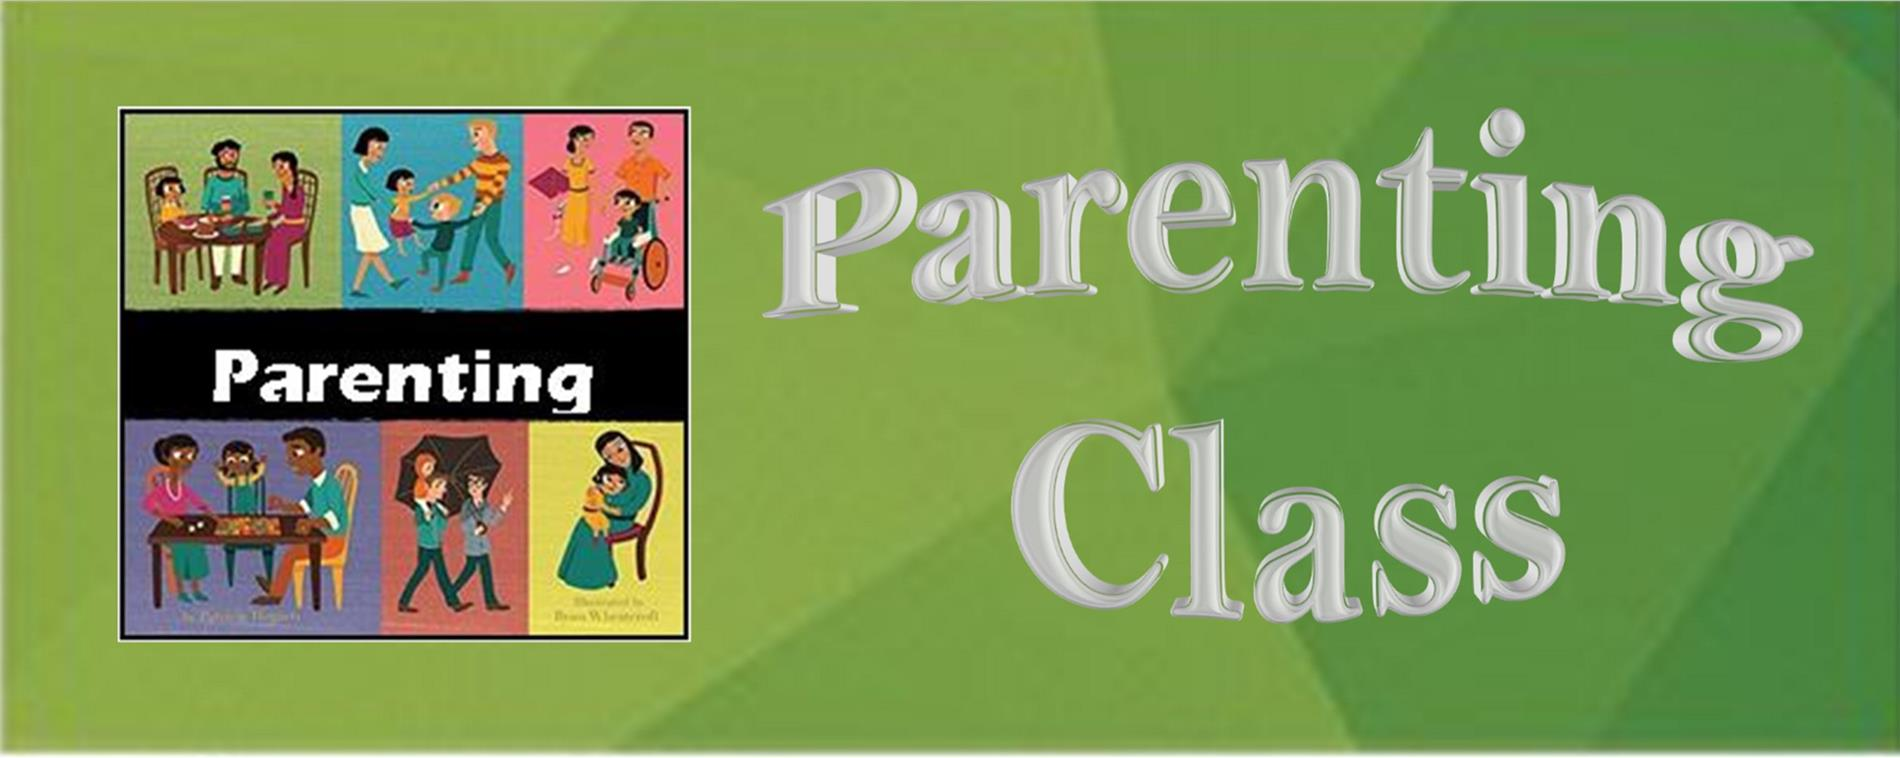 Parenting Header page